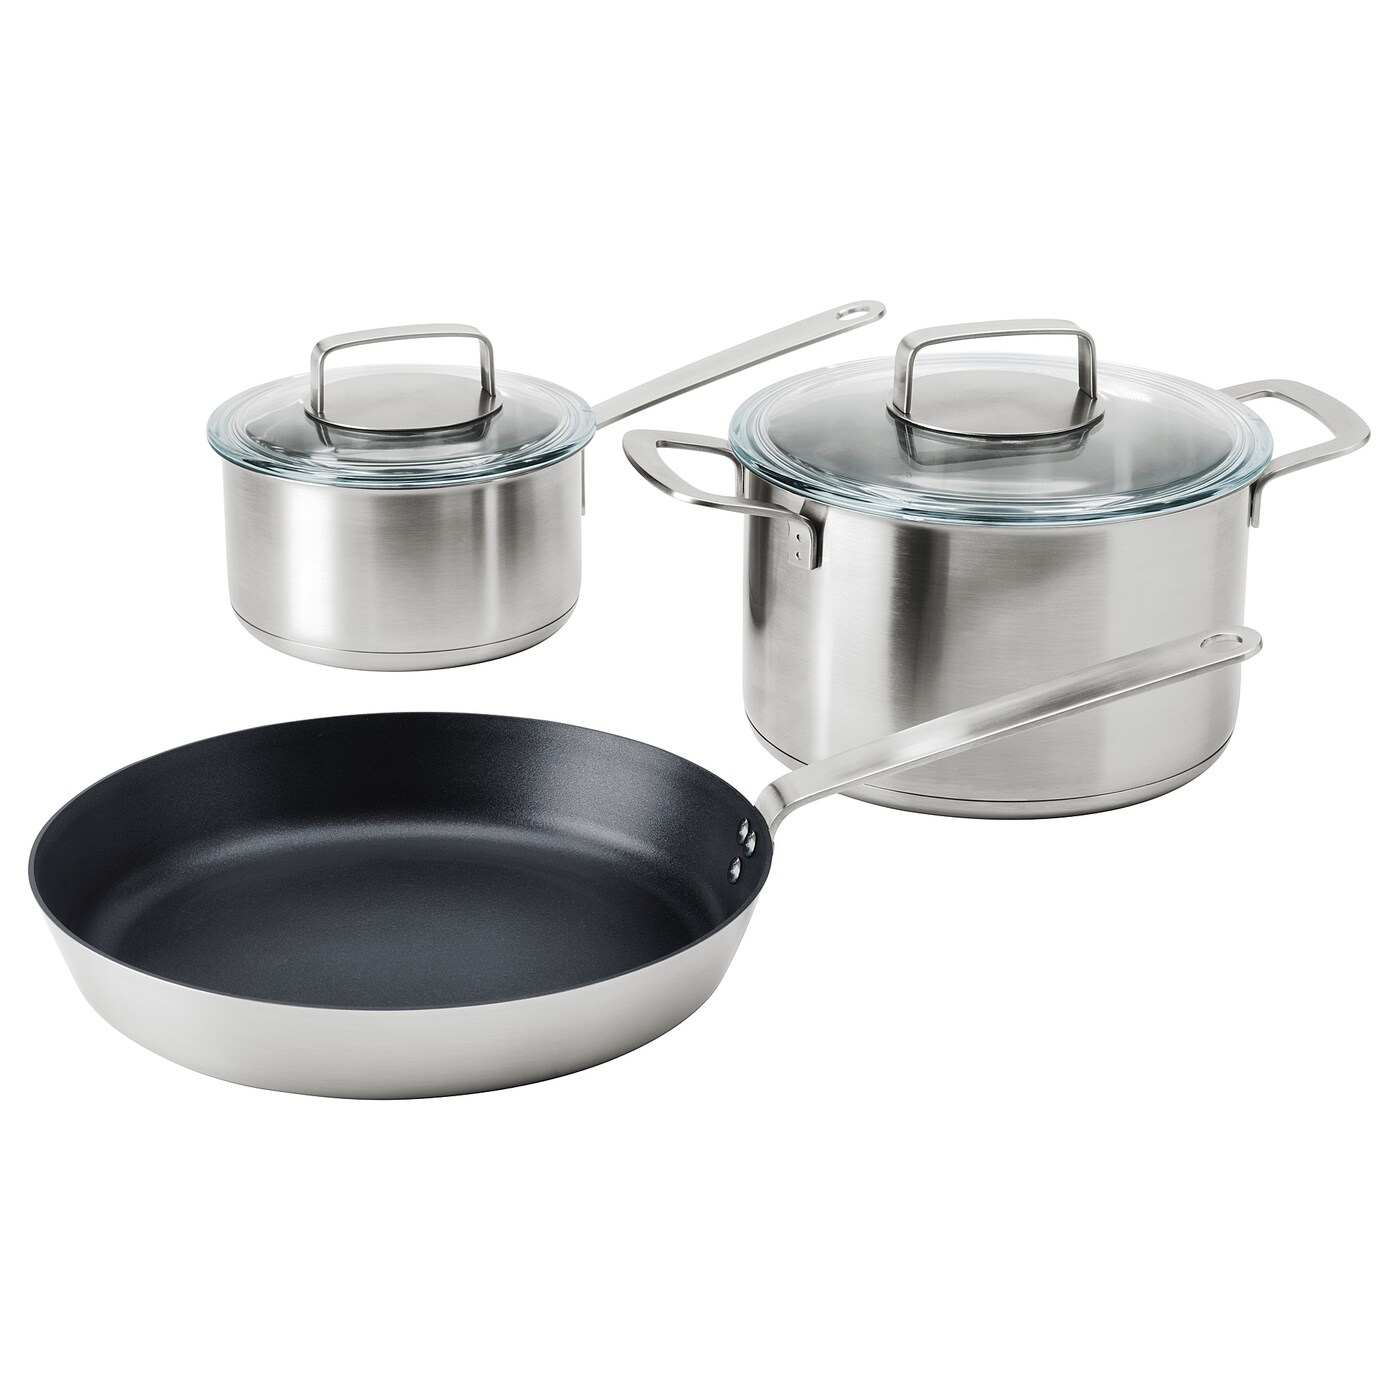 IKEA IKEA 365+ 5-piece cookware set Works well on all types of hobs, including induction hob.